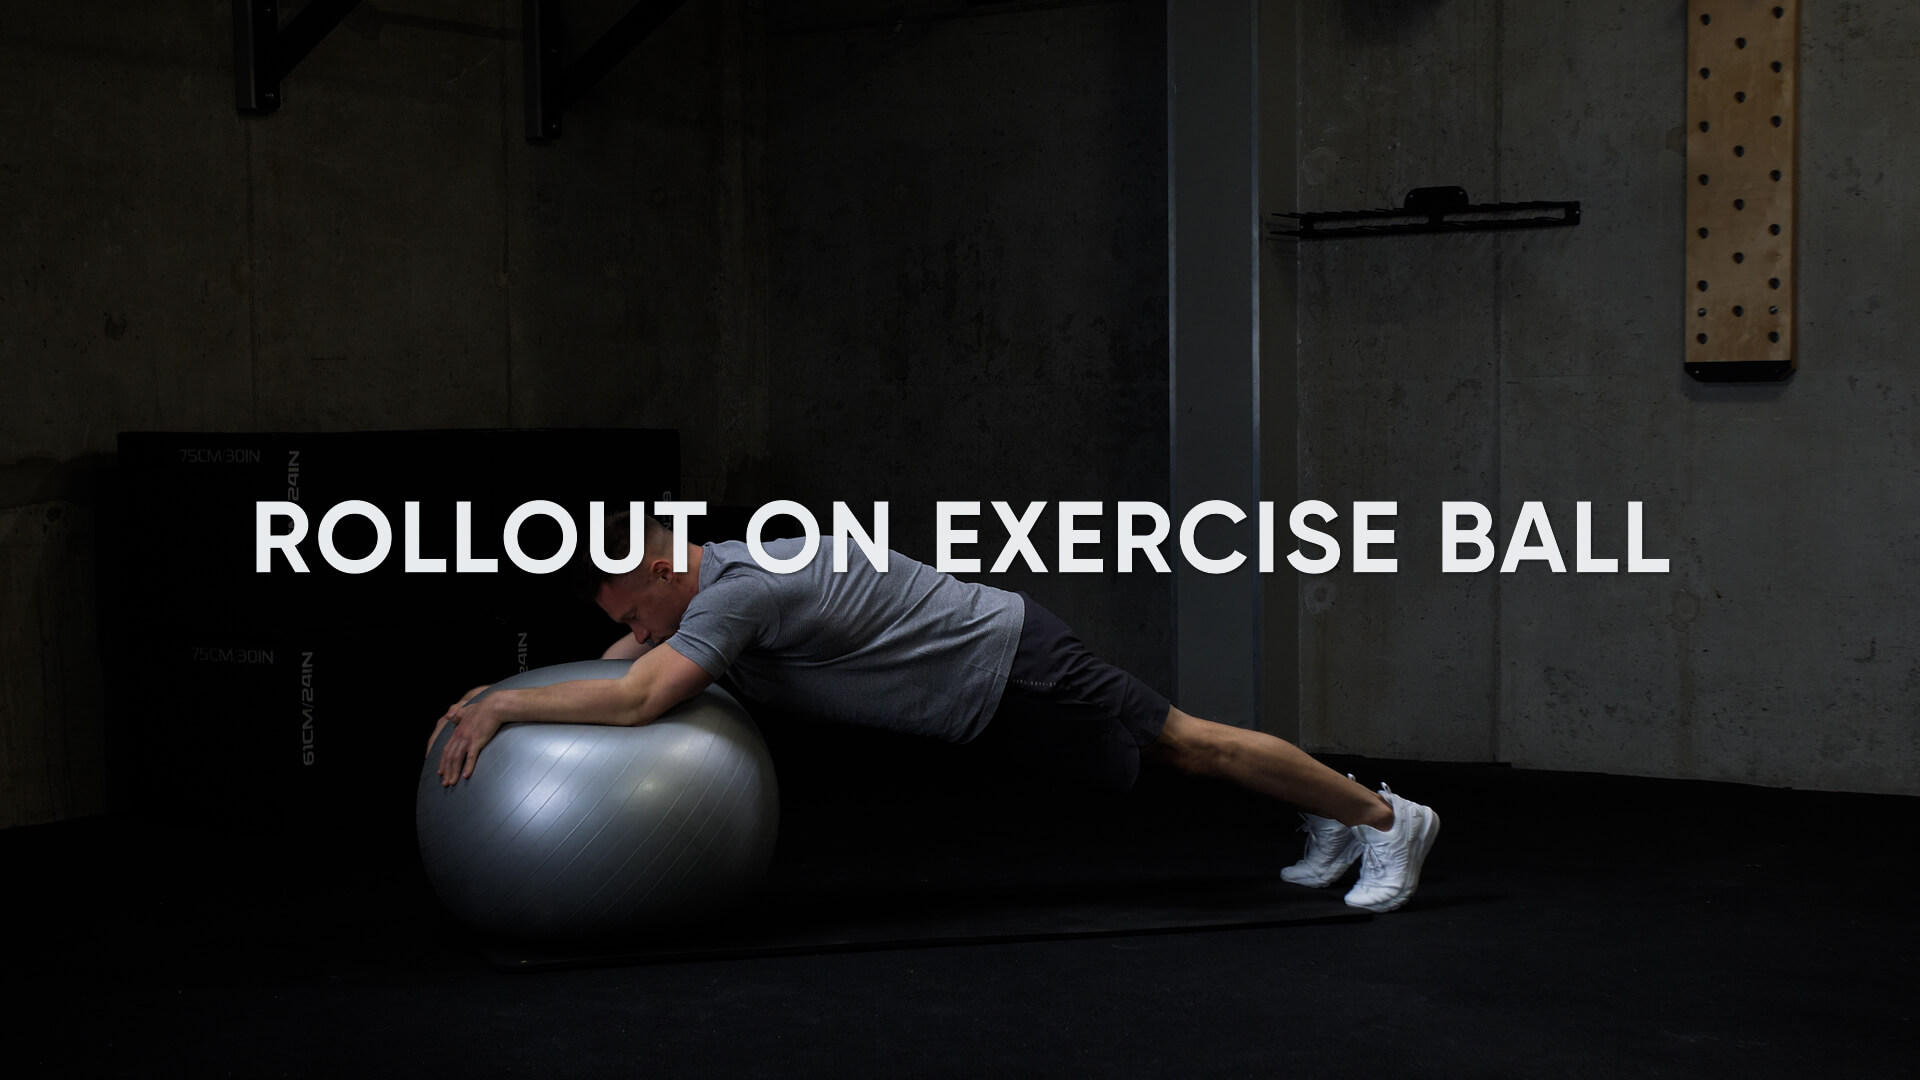 Roll Out on Exercise Ball